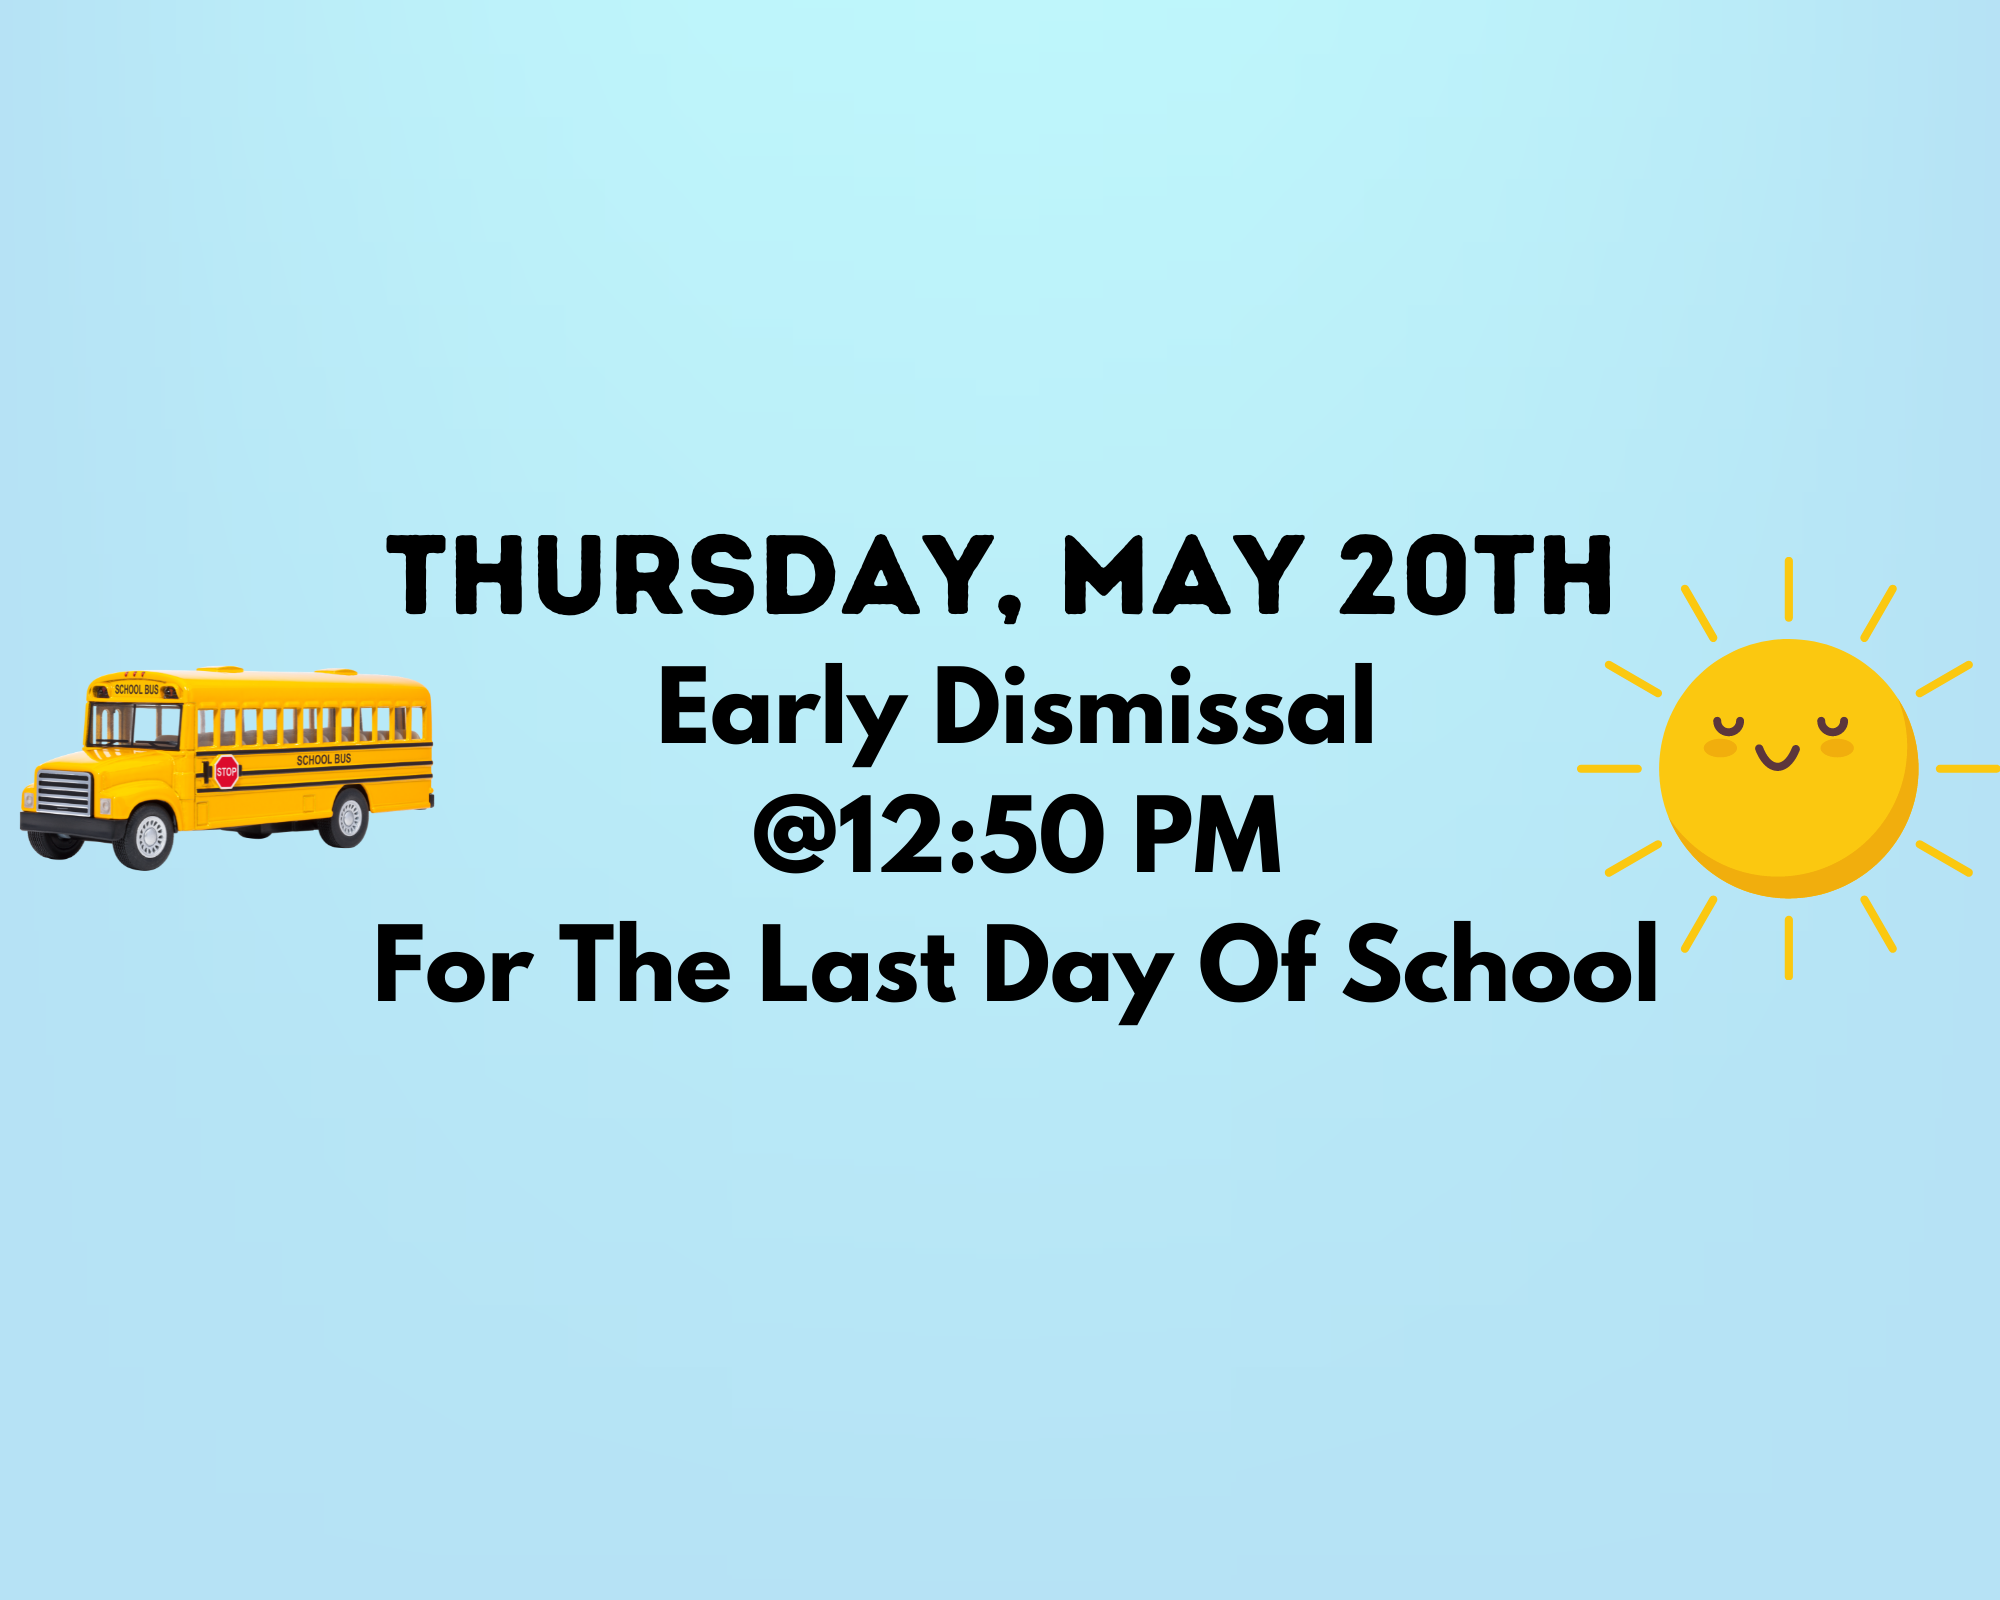 Thursday, May 20th Early Dismissal @ 12:50 PM